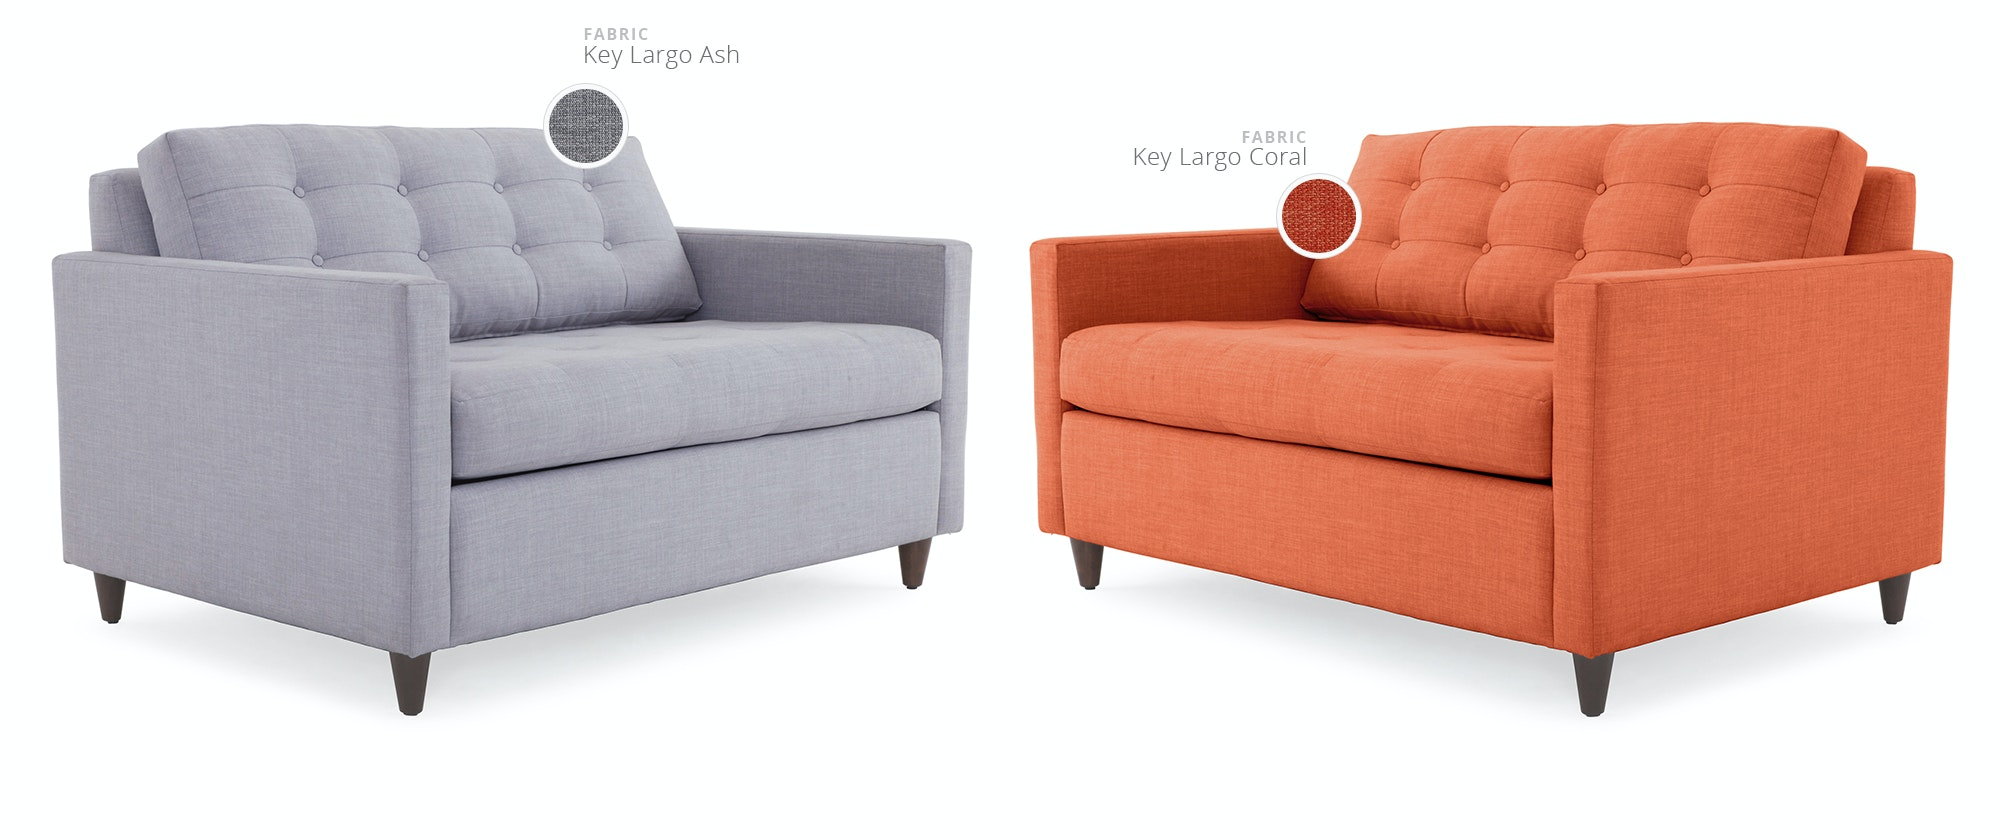 sleeper chair twin west elm leather eliot joybird shop by color